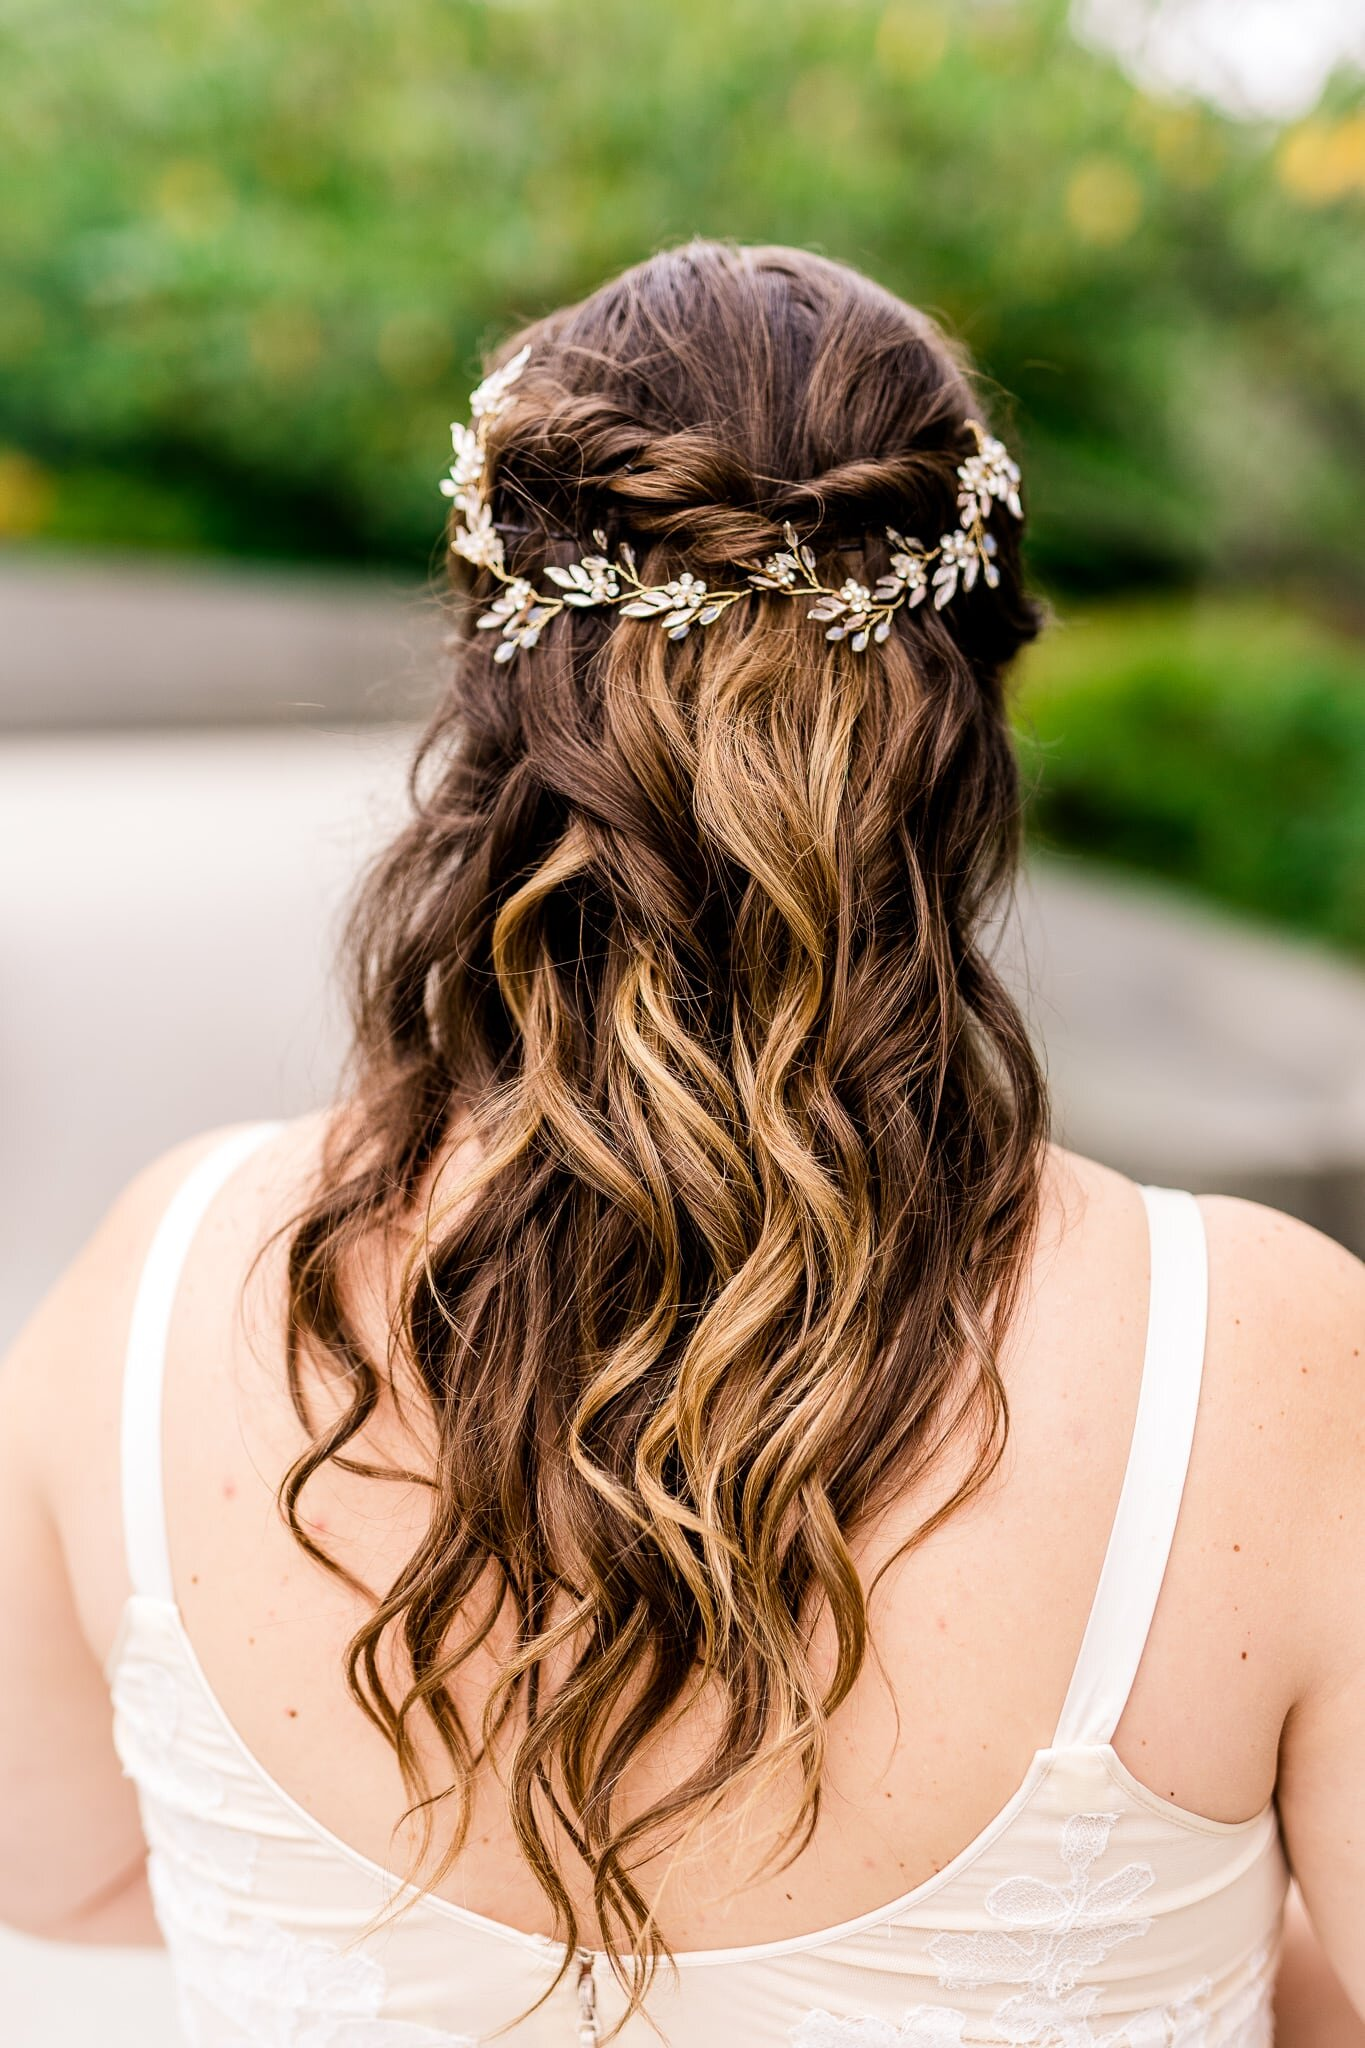 Details of a bride's hair featuring a bridal hair vine hairpiece on her wedding day at the Tidal Basin near the MLK Memorial in Washington, DC